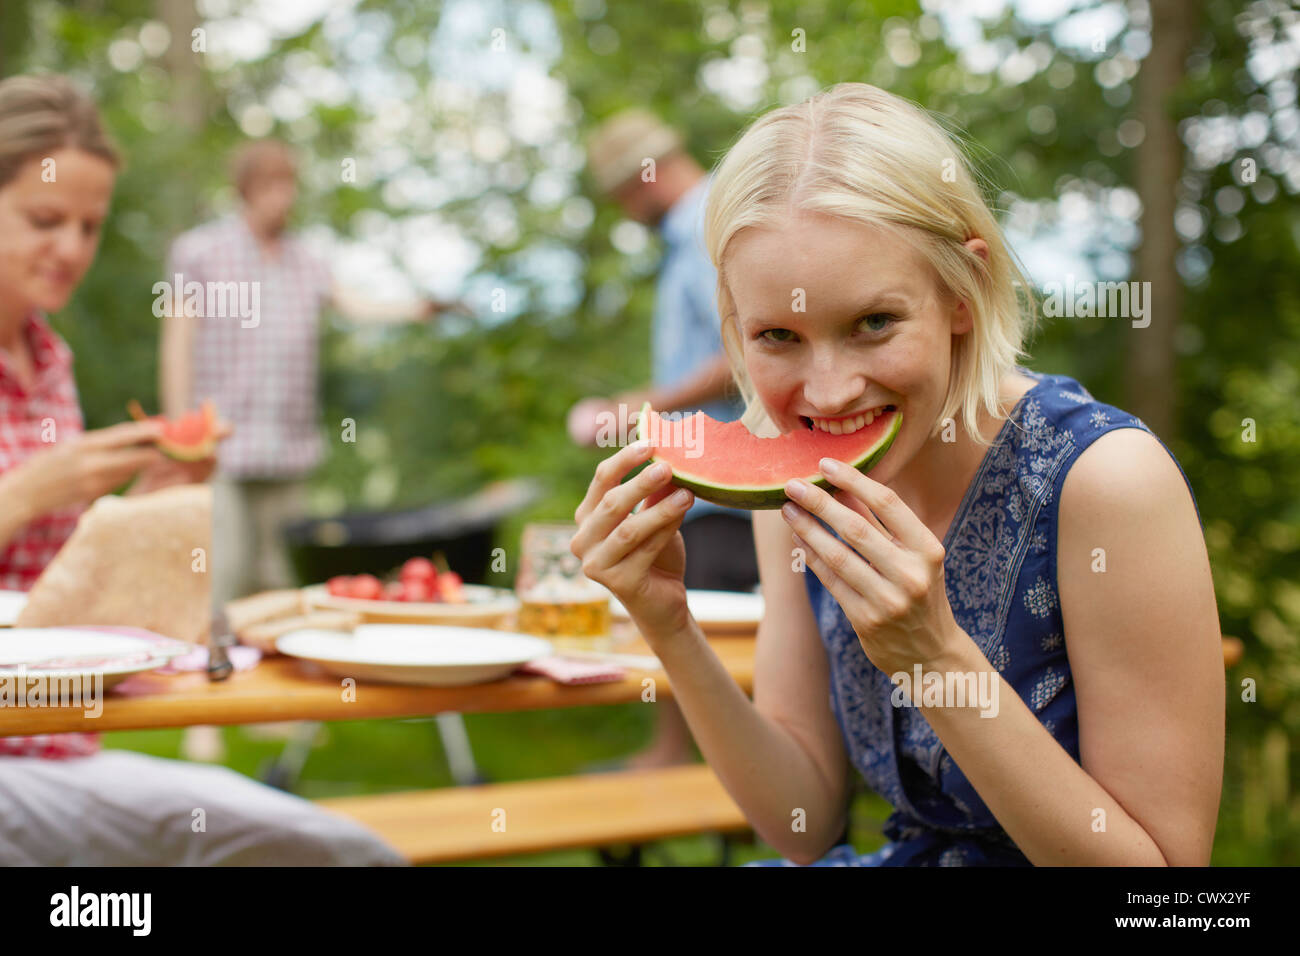 Woman eating watermelon outdoors Photo Stock